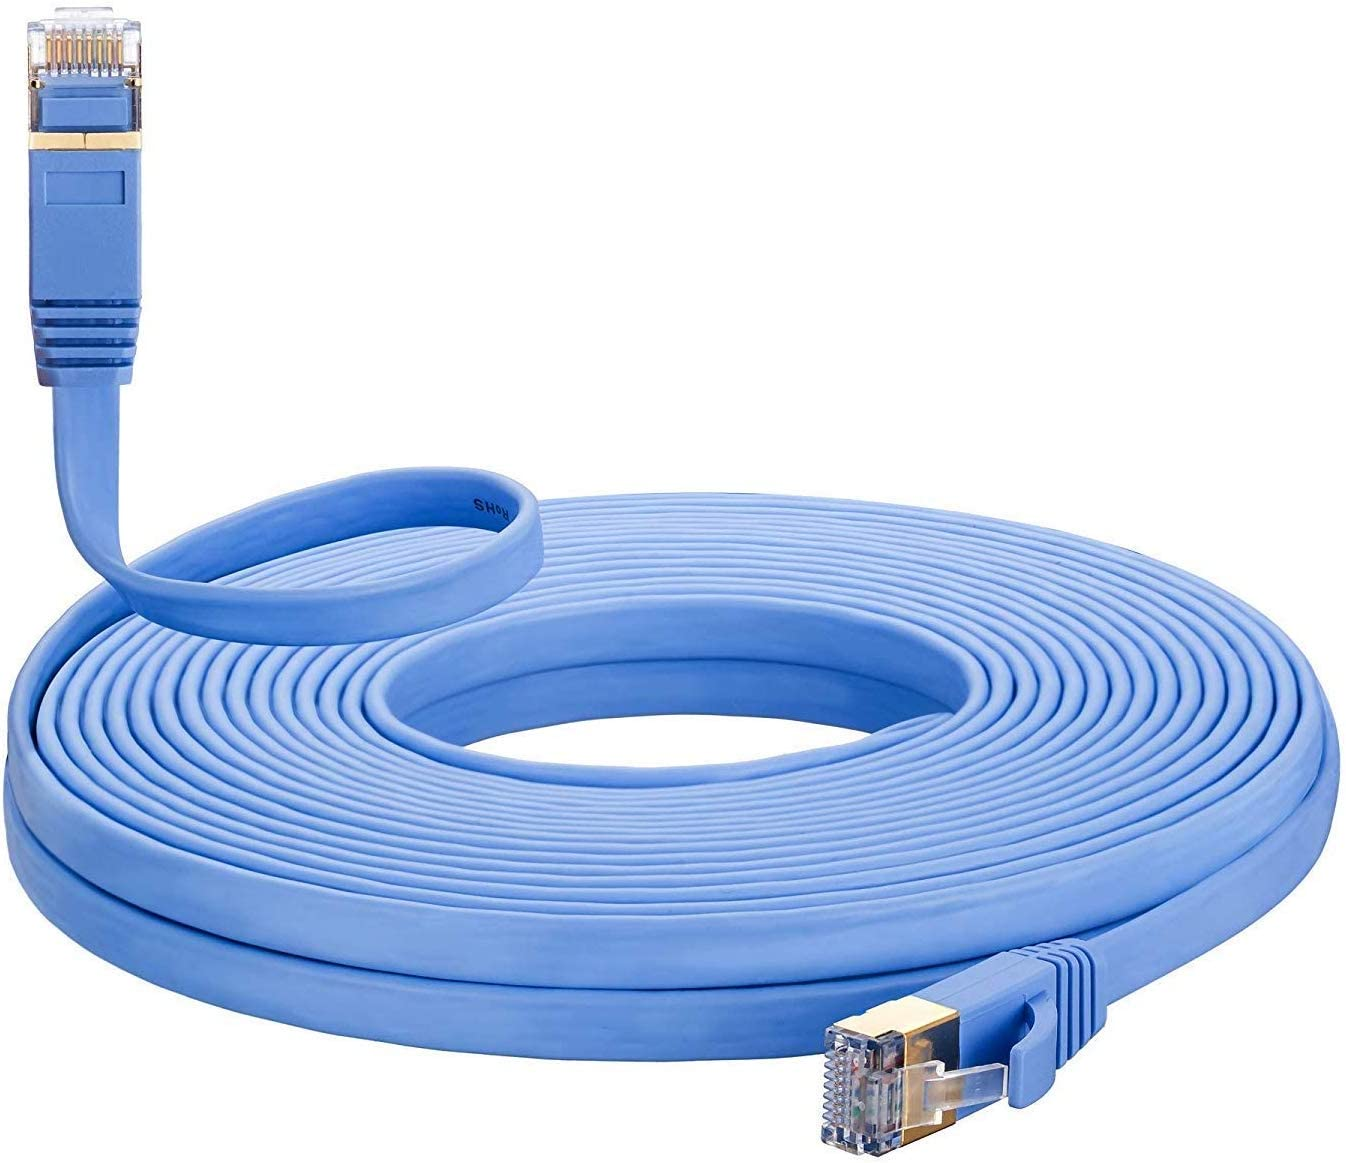 Blue Computers Printers etc Case Safety 1x 50 feet Ethernet Network CAT7 Cable Cord Flat Rj45 High Speed Connector for Routers